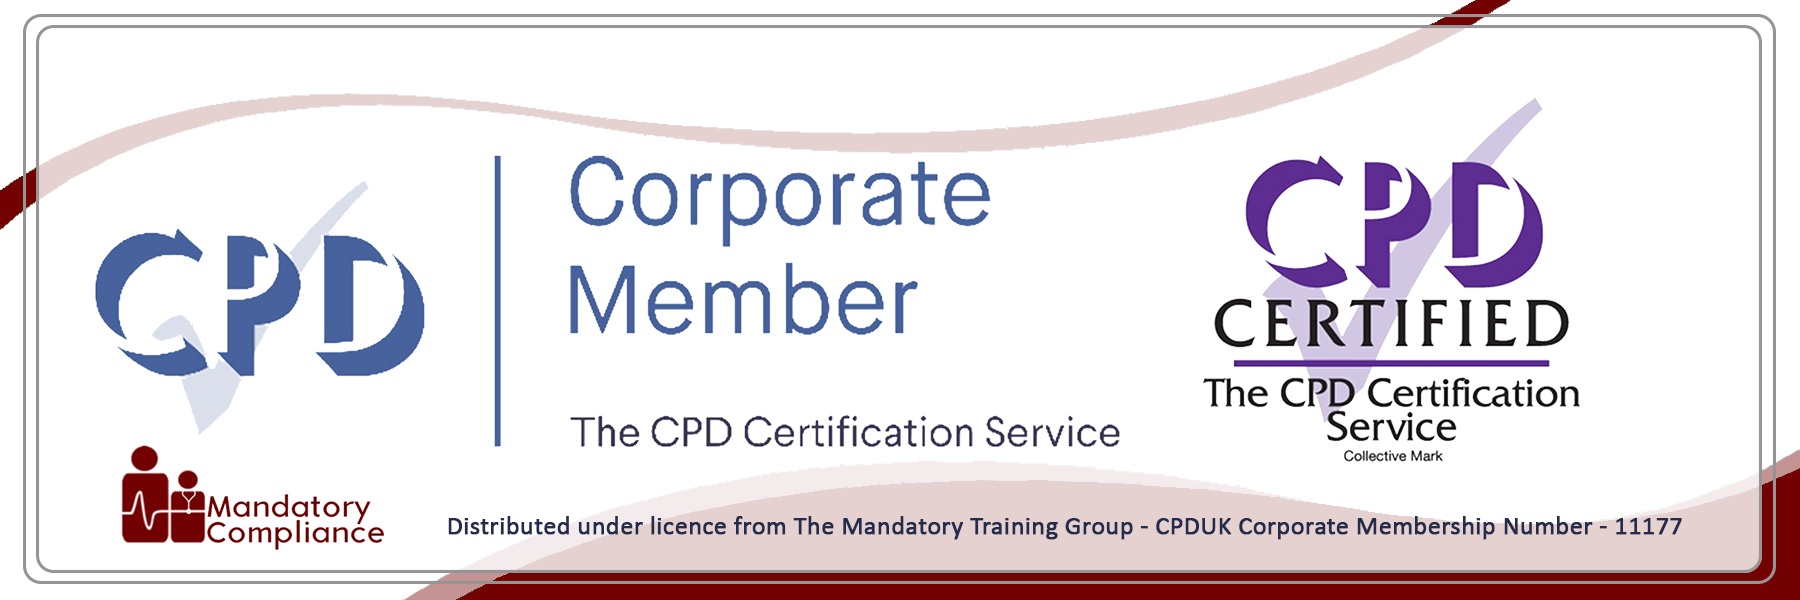 Care Certificate Standard 6 – Communication - Online Training Course - CPD Accredited - Mandatory Compliance UK -